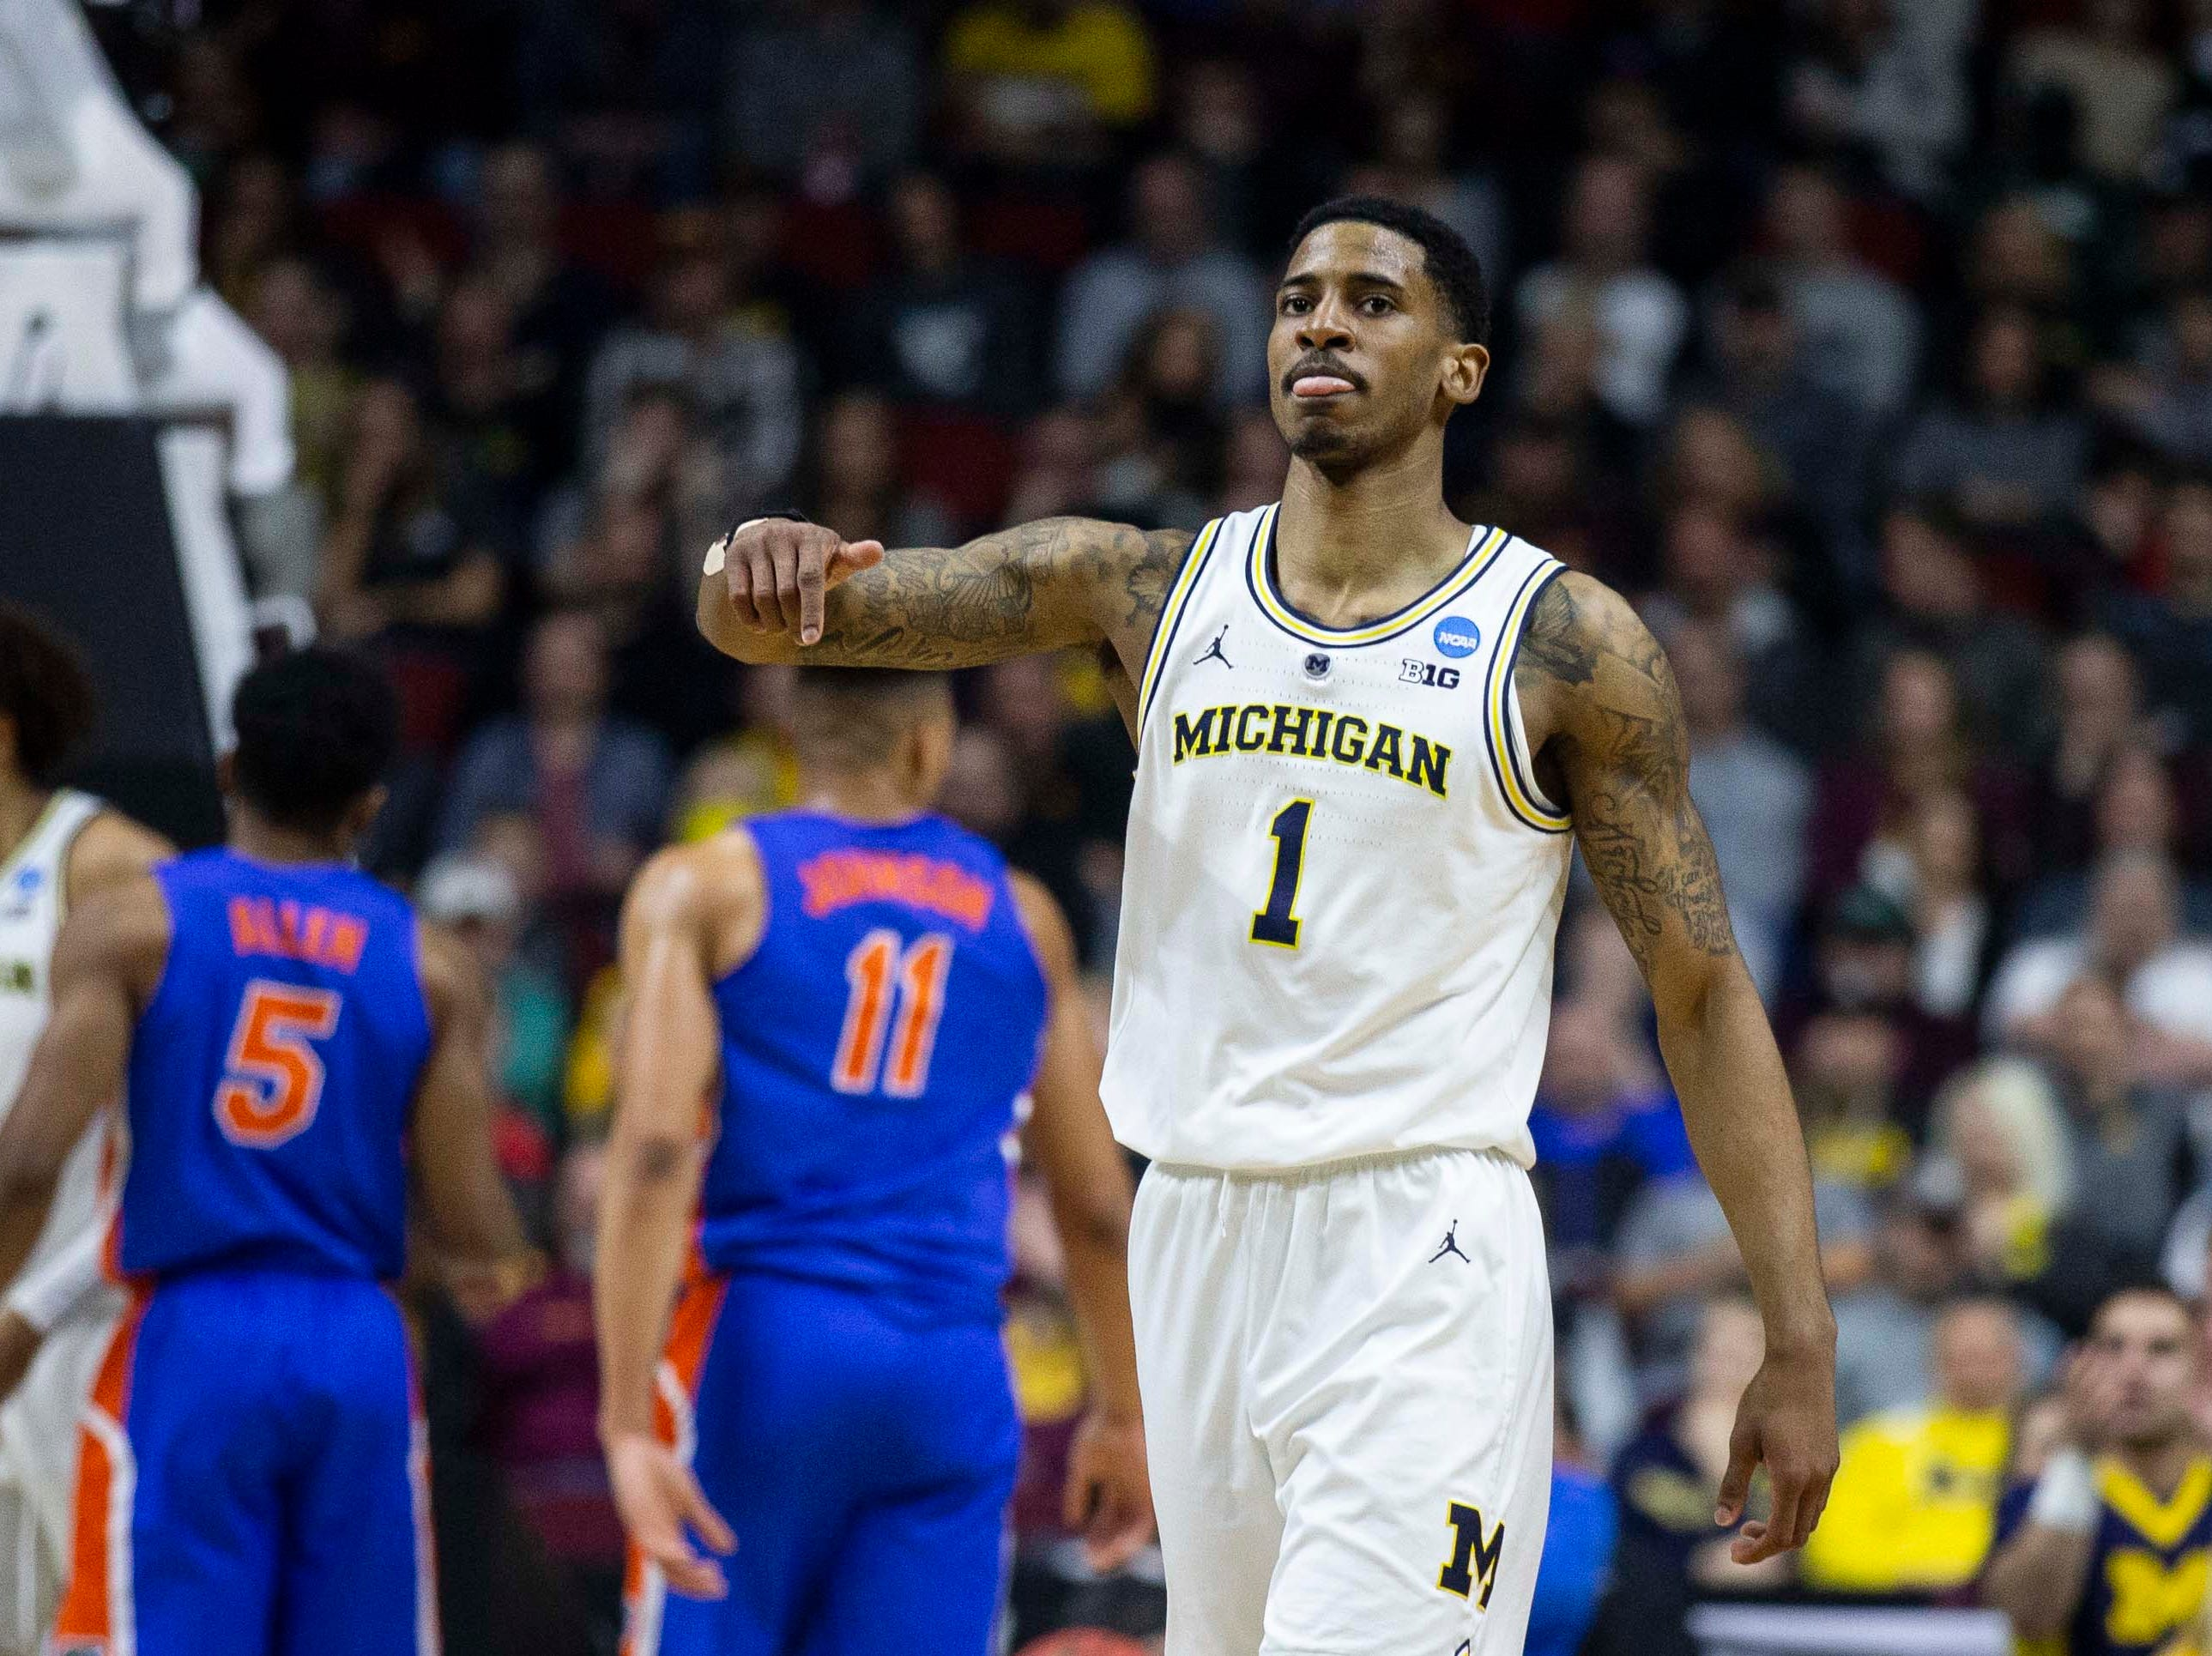 Michigan's Charles Matthews after a call goes his team's way during the NCAA Tournament second-round match-up between Michigan and Florida on Saturday, March 23, 2019, in Wells Fargo Arena in Des Moines, Iowa.